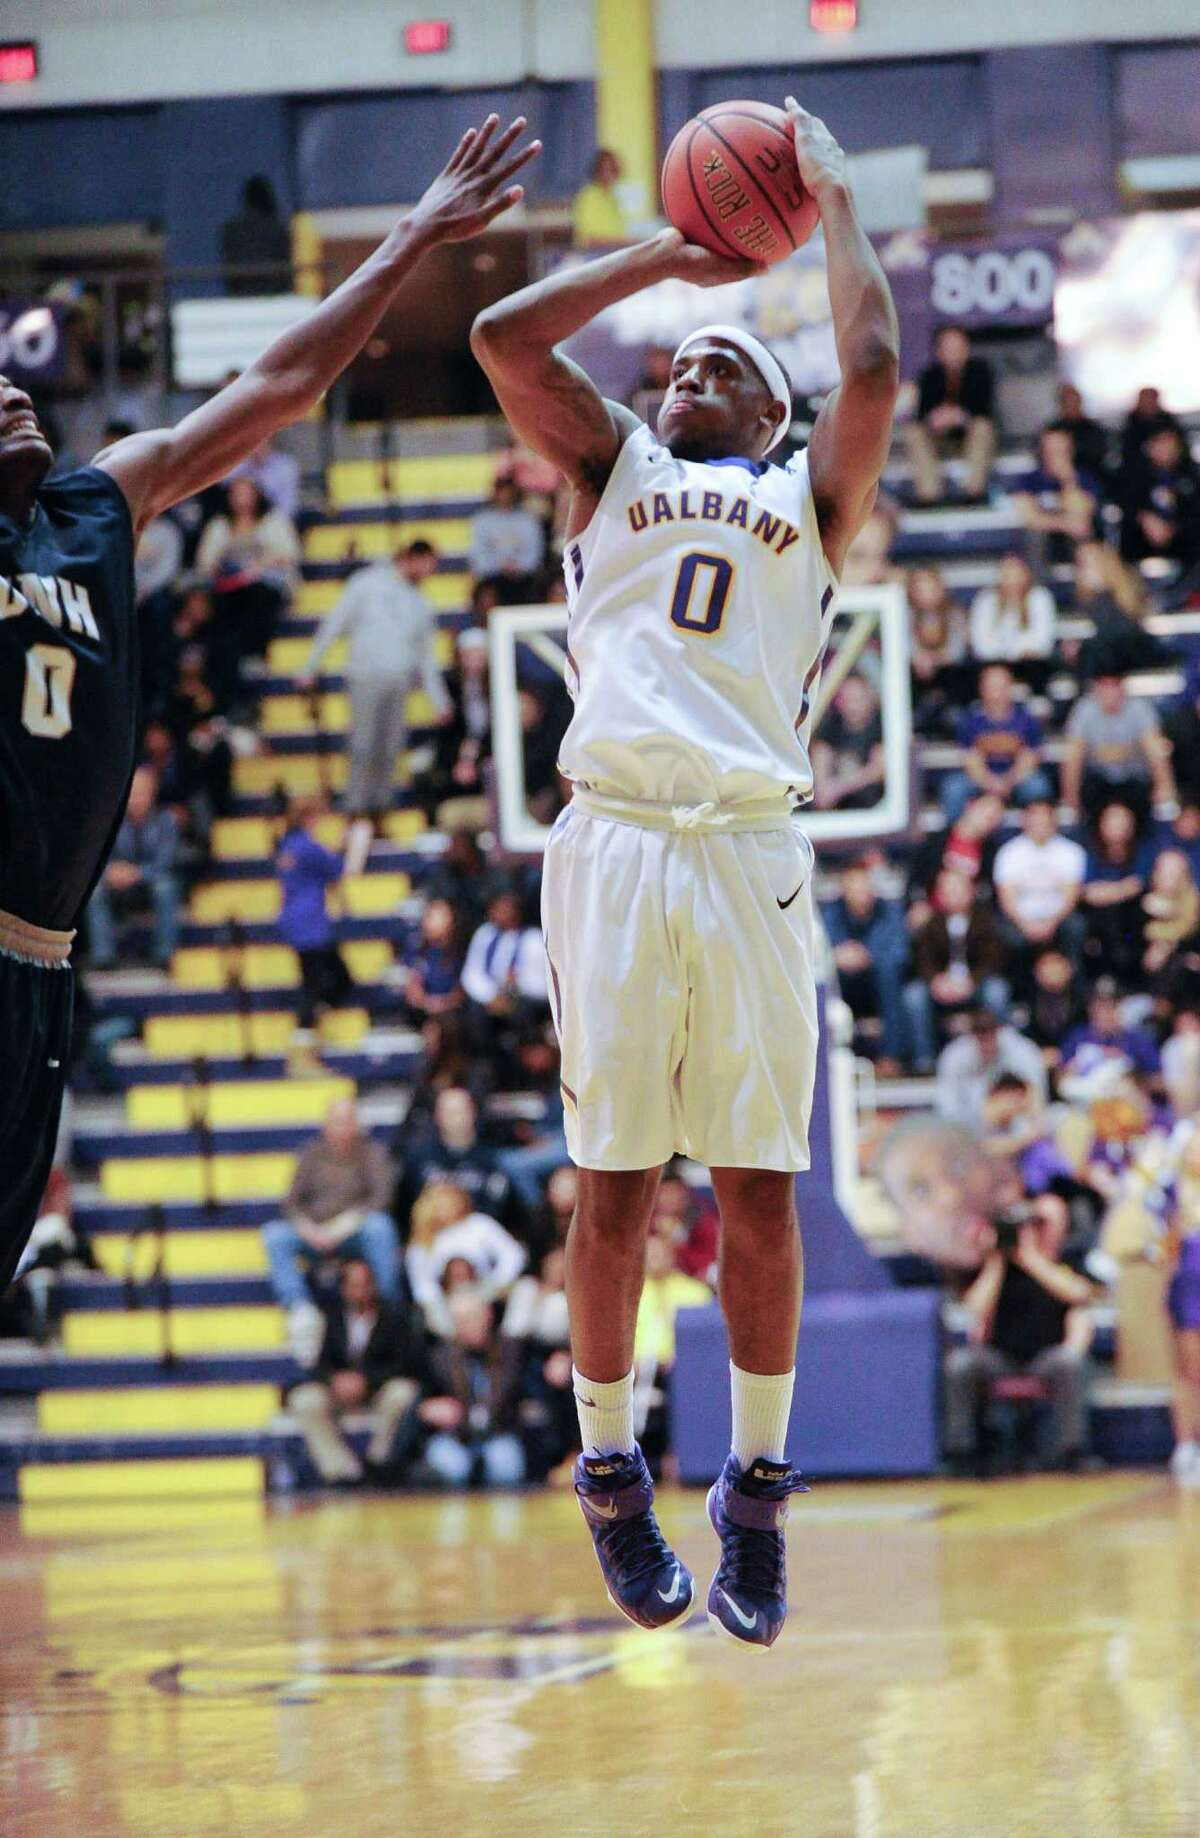 UAlbany's Evan Singletary (0)puts up a shot against New Hampshire during the first half of an NCAA college basketball game at the SEFCU Arena in Albany, N.Y., Wednesday, Feb. 4, 2015. (Hans Pennink / Special to the Times Union) ORG XMIT: HP106